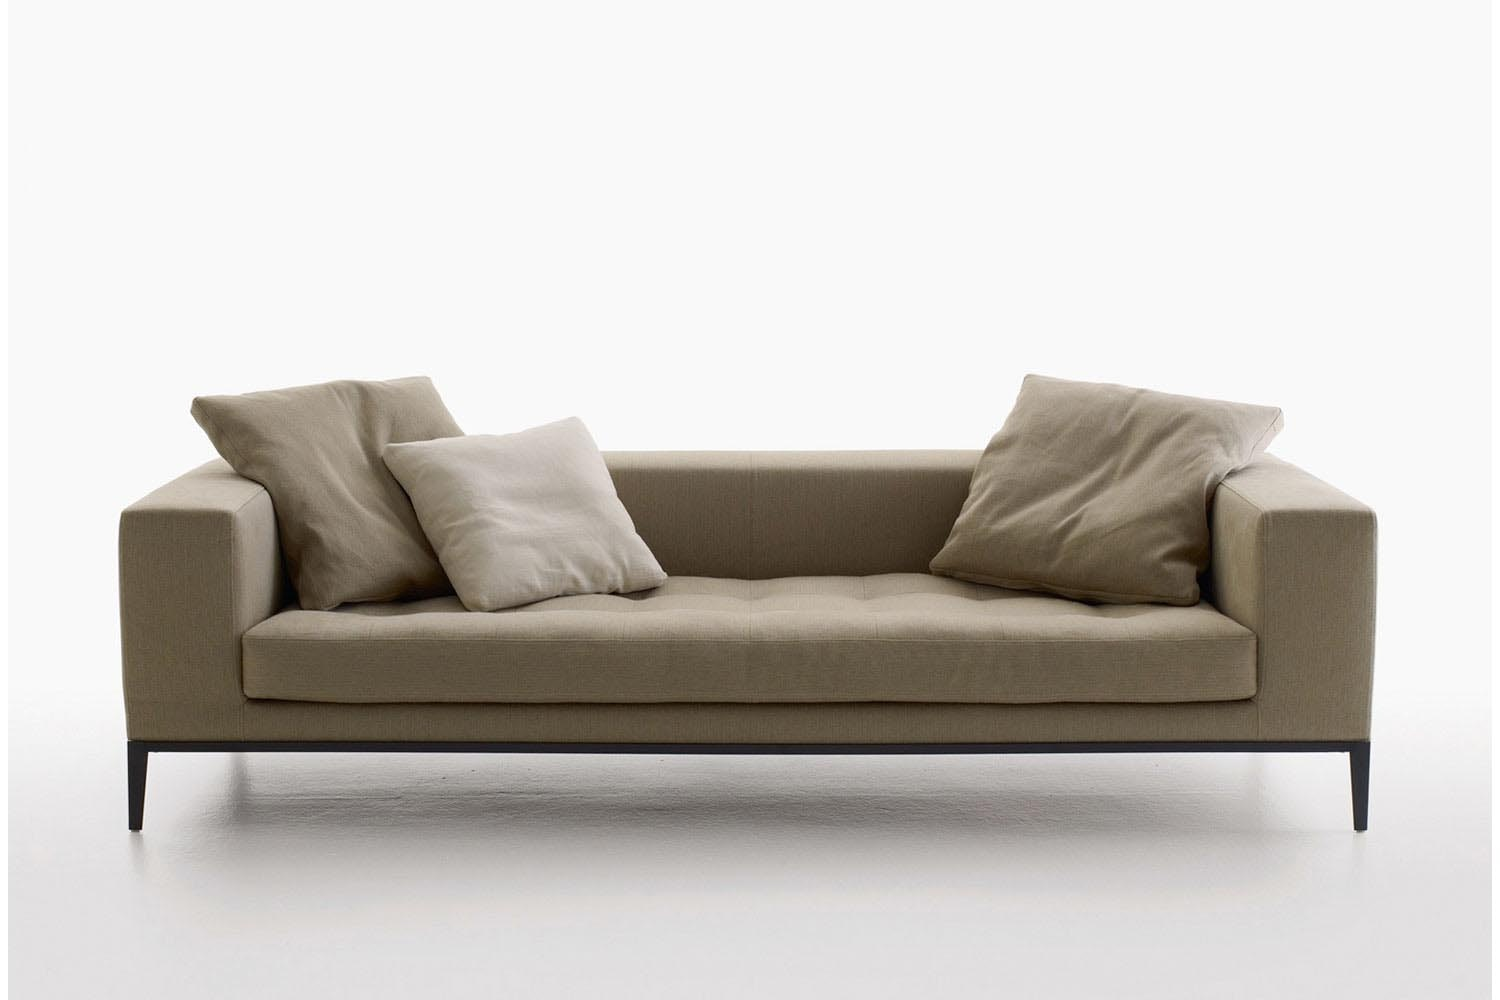 Simplex Sofa by Antonio Citterio for Maxalto